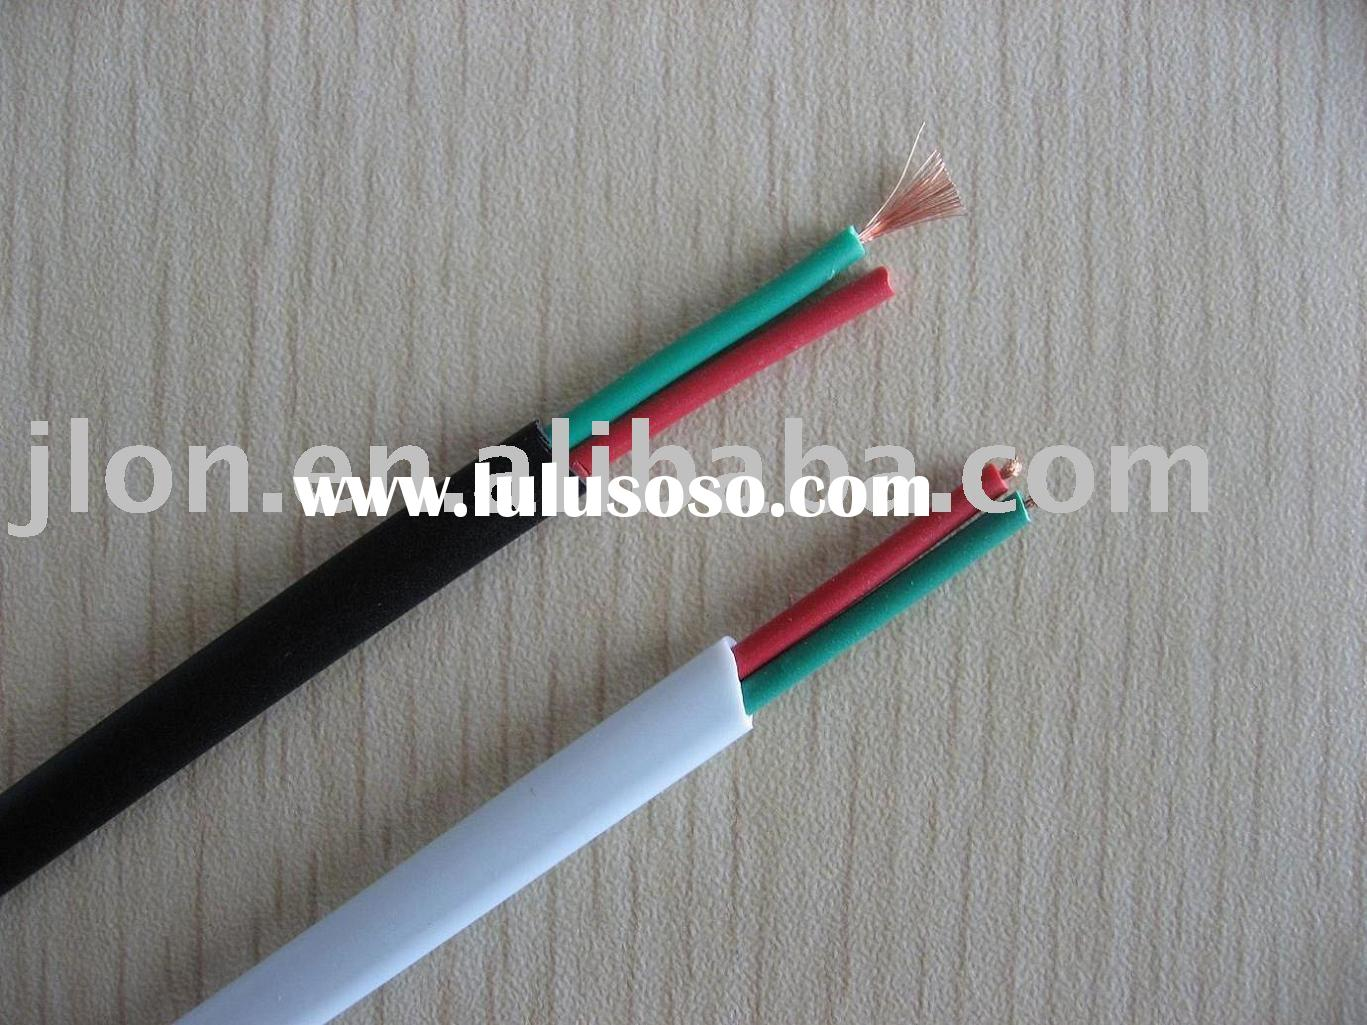 Flexible Flat Cable Manufacturers : Flexible flat cable wire for sale price china